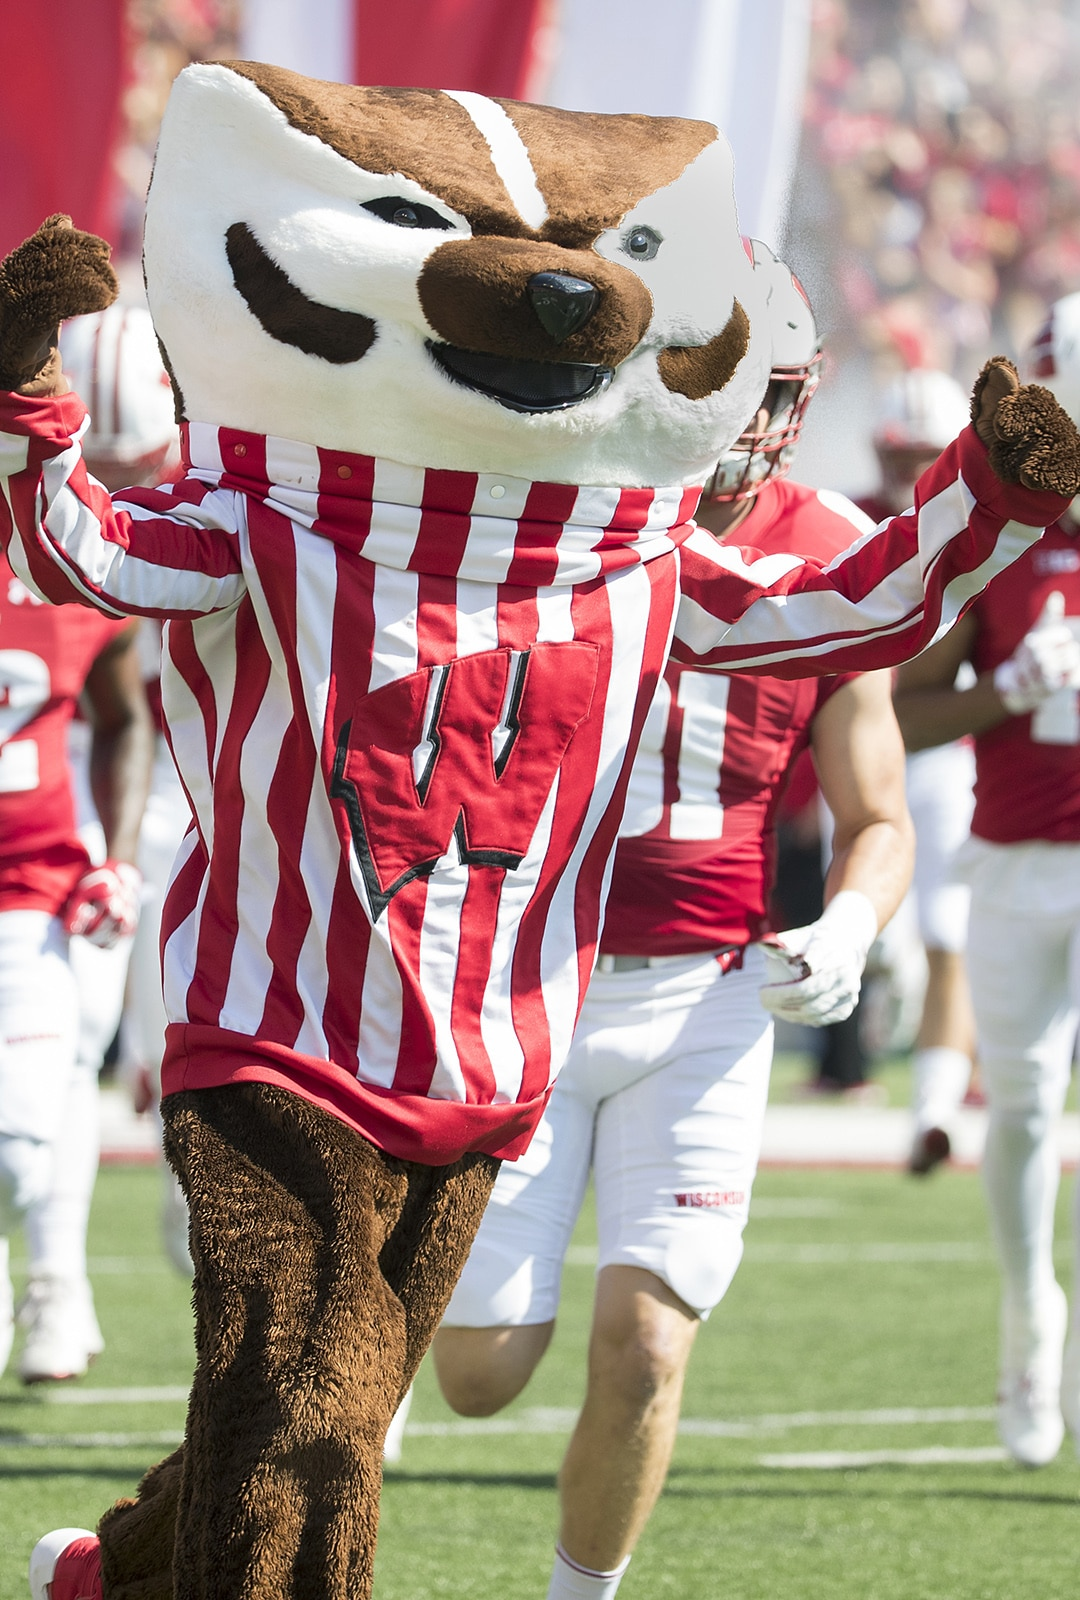 Wisconsin Badgers XXXX during an NCAA College Football game against the Florida Atlantic Owls Saturday, September 9, 2017, in Madison, Wis. The Badgers won 31-14. (Photo by David Stluka)